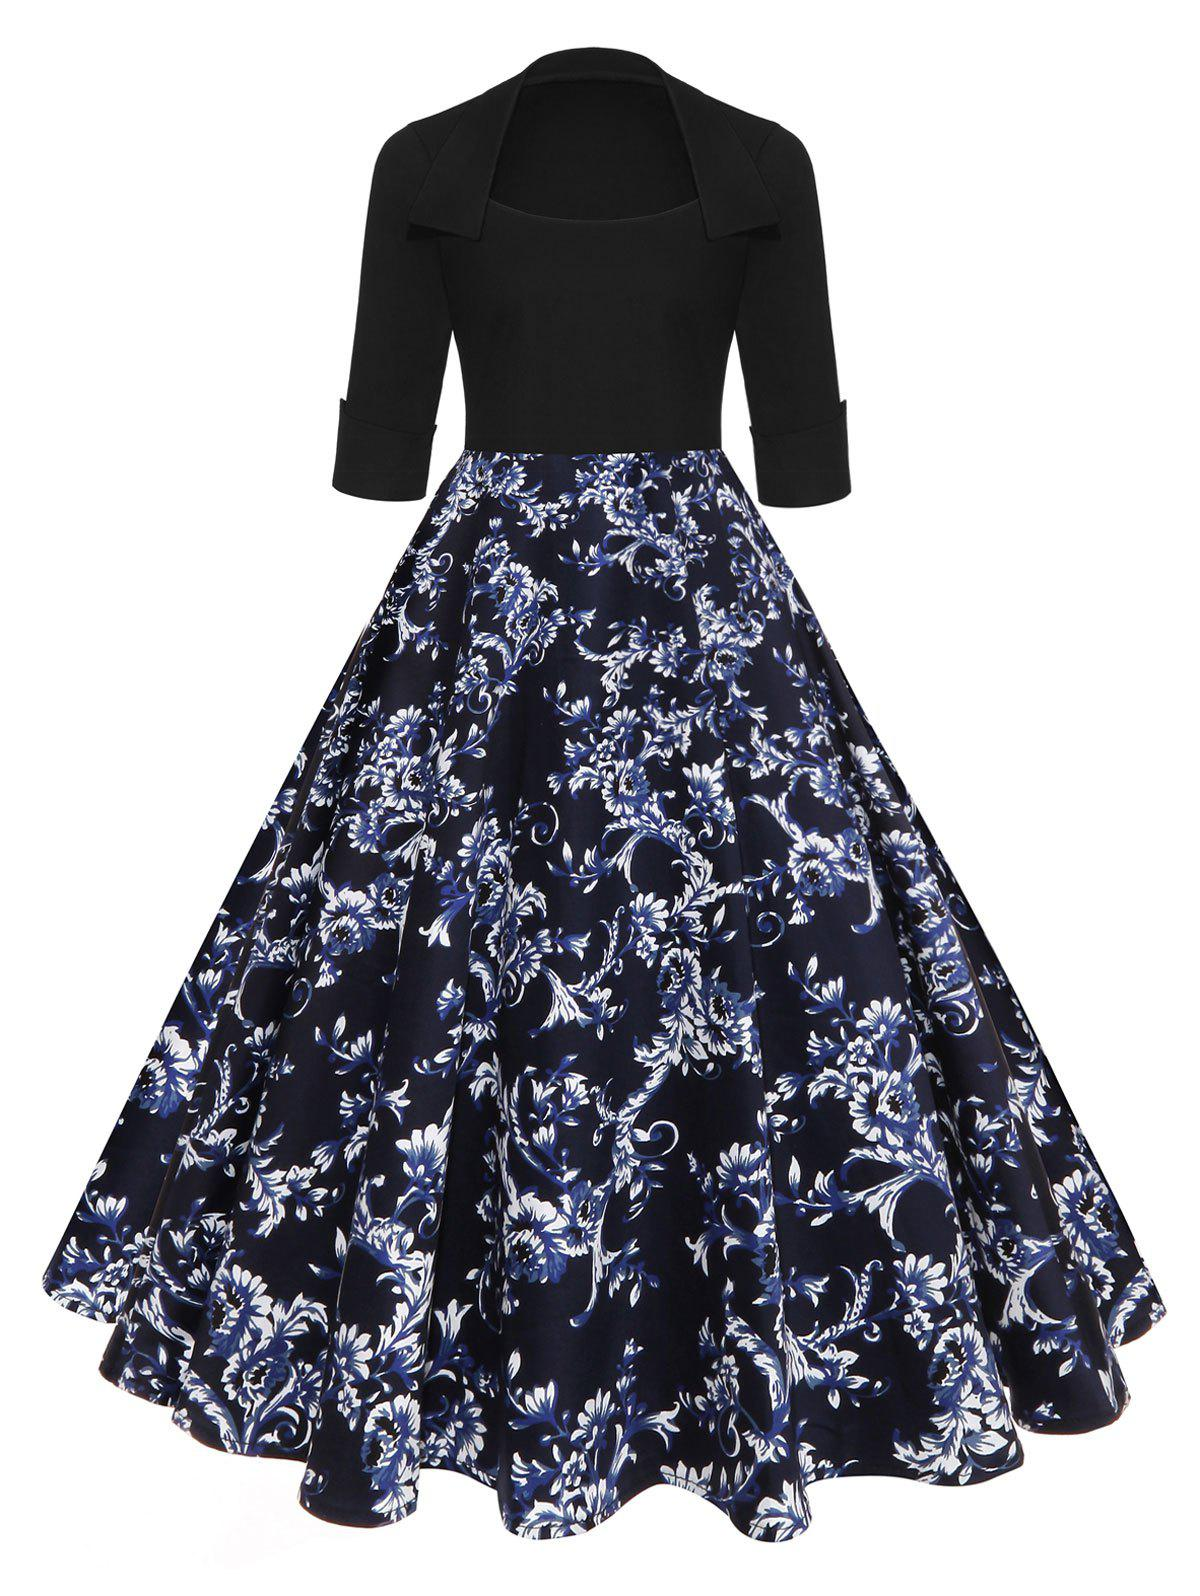 Vintage High Waist Floral A Line DressWOMEN<br><br>Size: 2XL; Color: BLUE; Style: Vintage; Material: Polyester,Spandex; Silhouette: A-Line; Dresses Length: Knee-Length; Neckline: Round Collar; Sleeve Length: 3/4 Length Sleeves; Pattern Type: Floral; With Belt: No; Season: Fall,Spring; Weight: 0.4500kg; Package Contents: 1 x Dress;